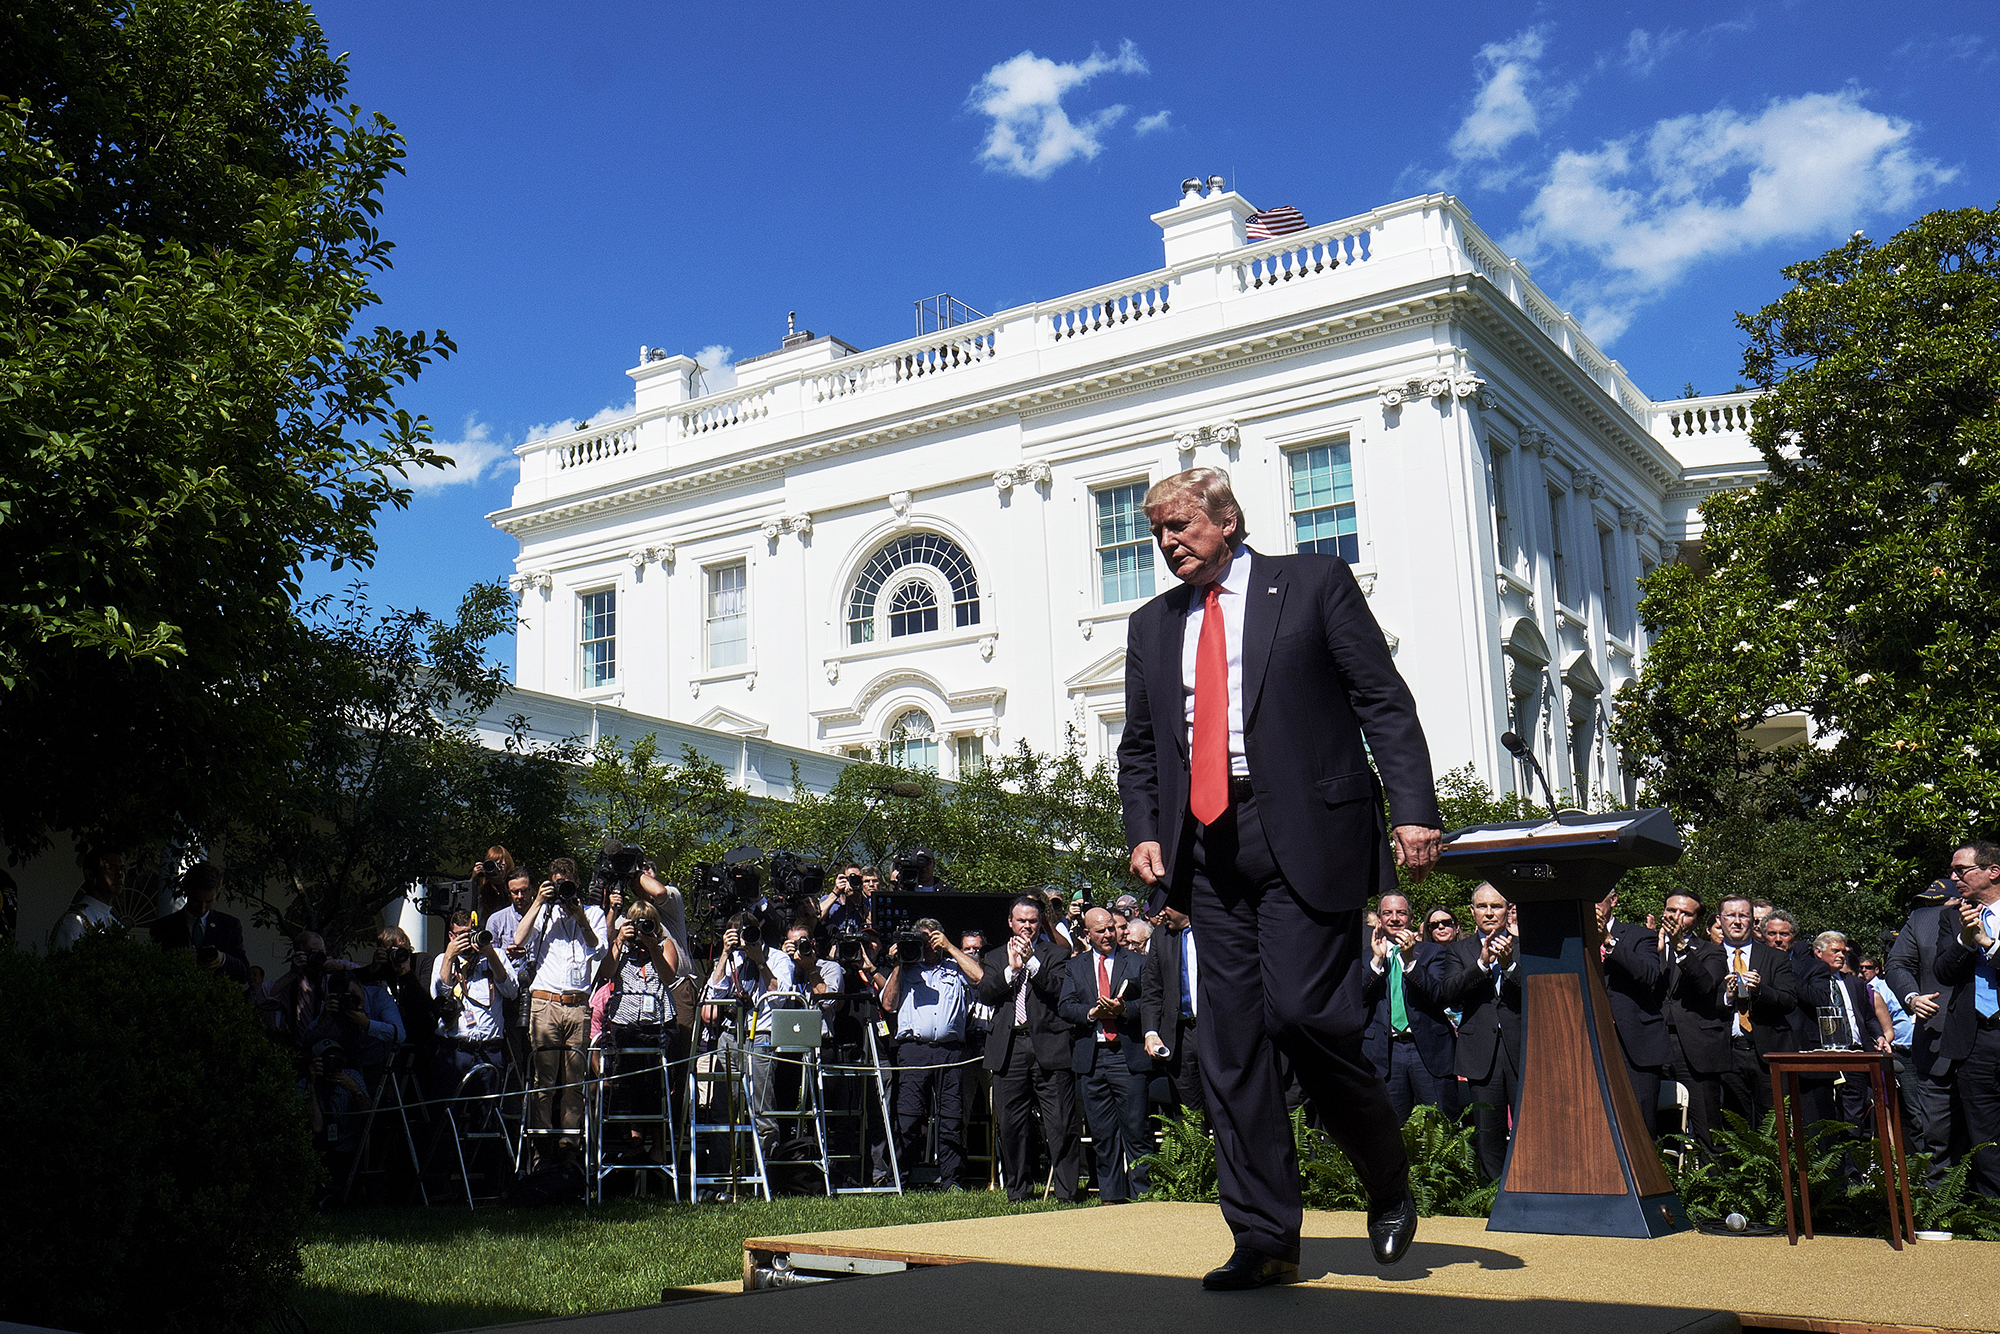 Donald Trump exits following an announcement in the Rose Garden of the White House that the U.S. would leave the Paris climate pact in Washington, D.C., U.S., on June 1, 2017.